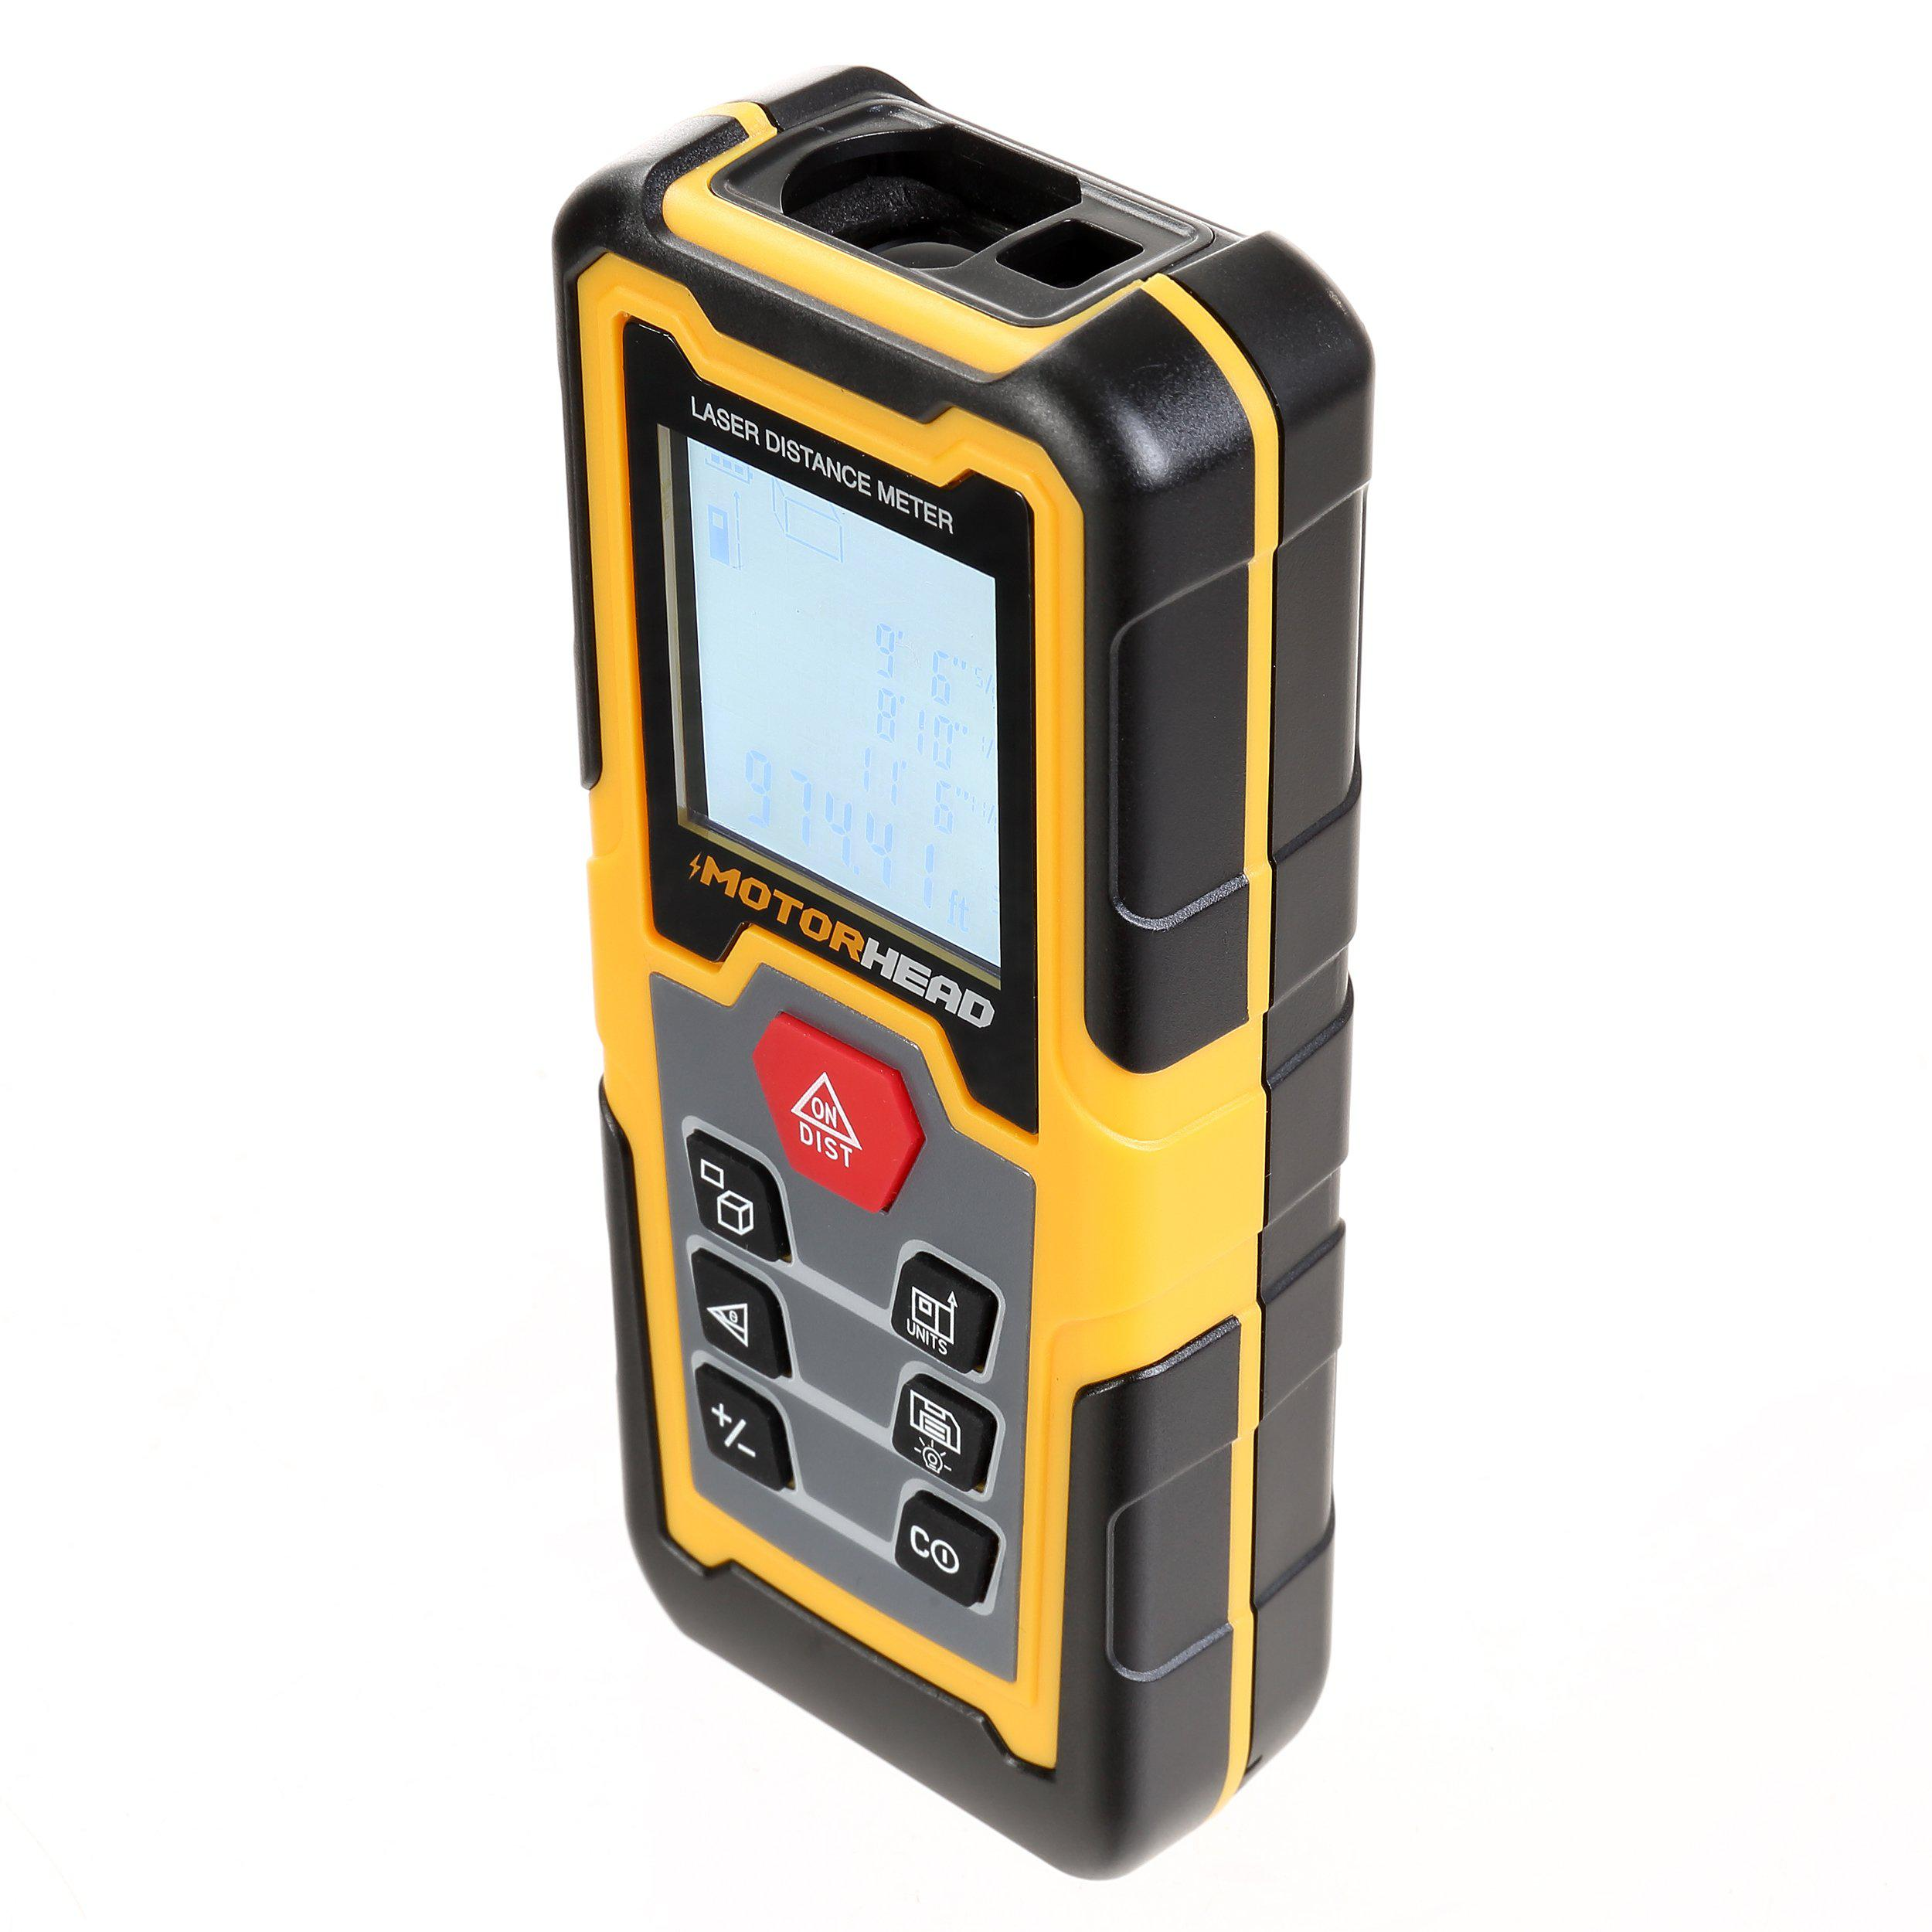 196 ft. Laser Distance Measure with Bubble Levels - Measuring Tools - MOTORHEAD Tools